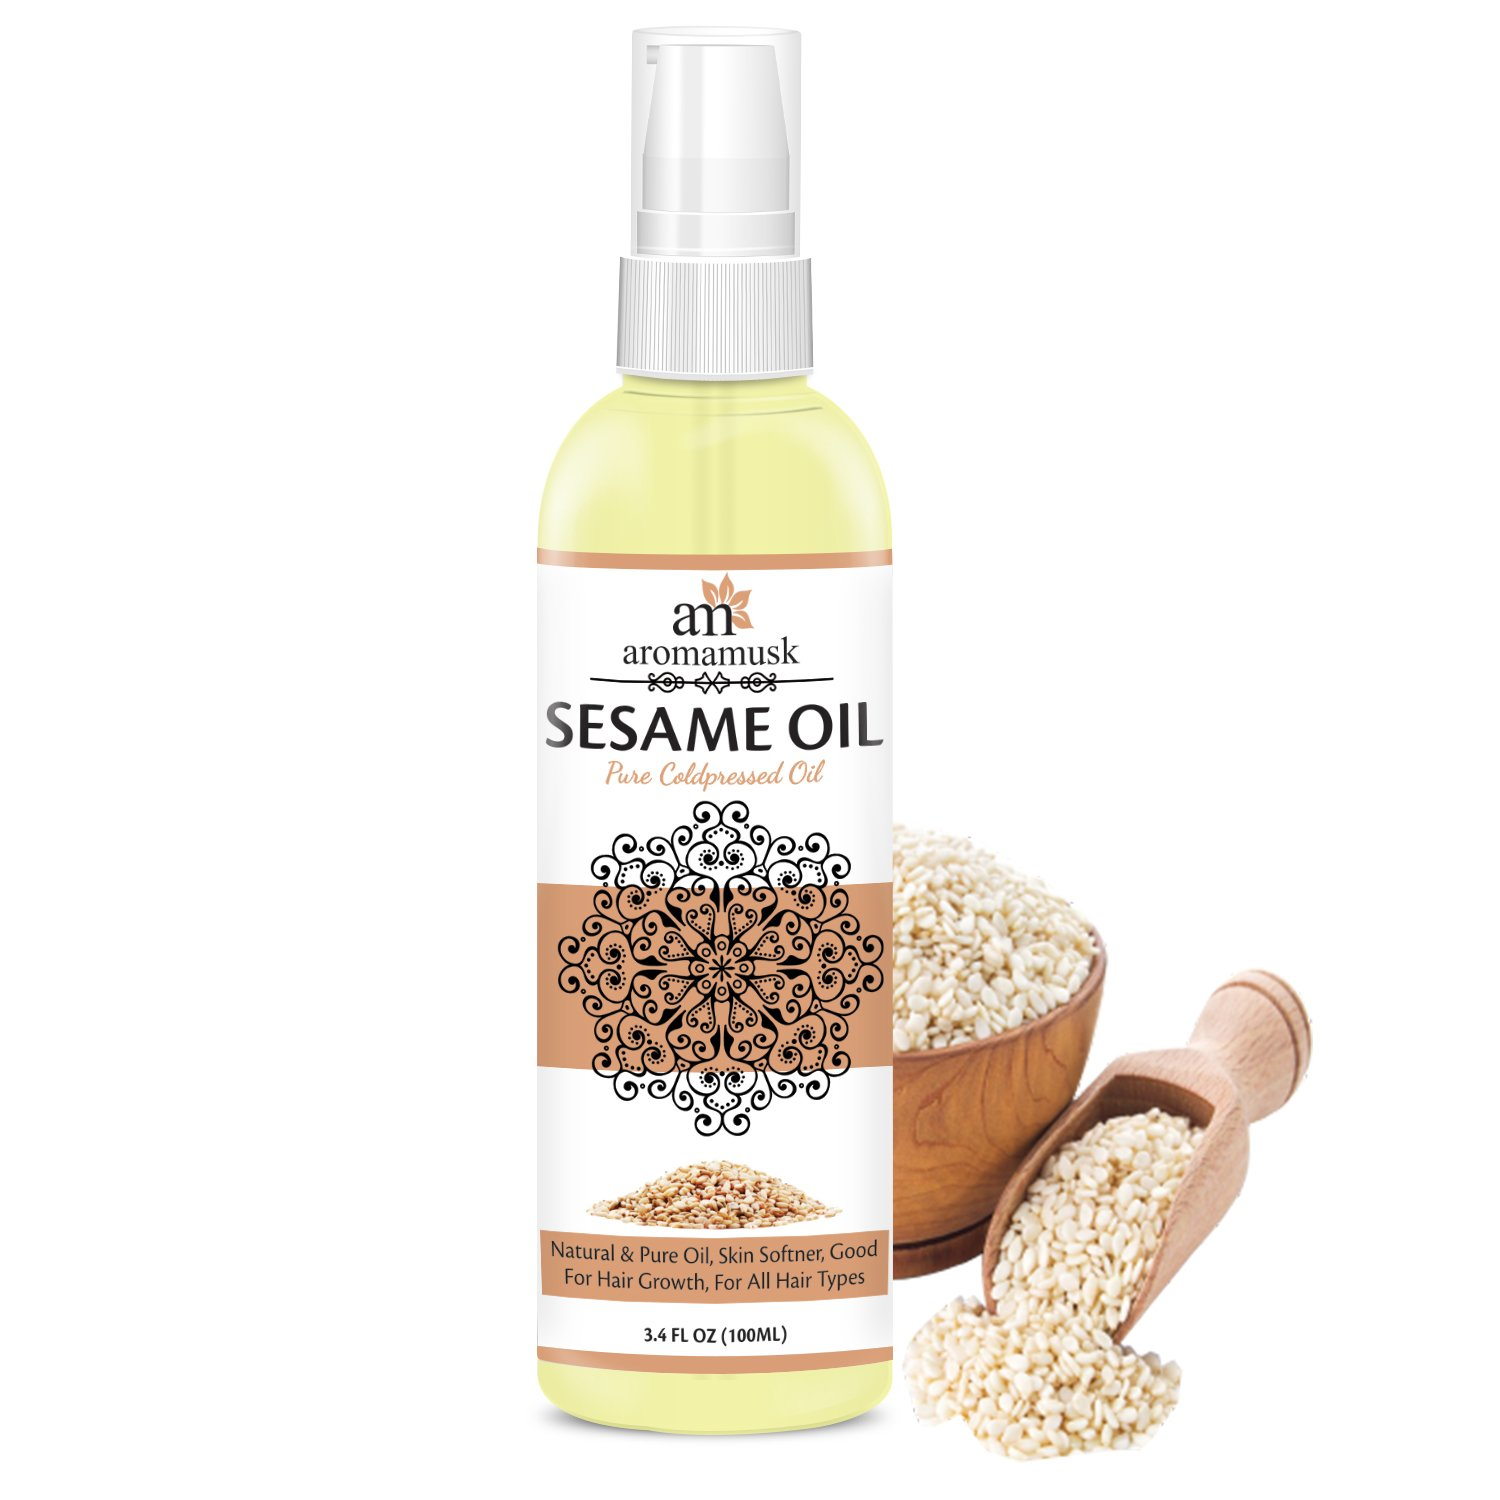 Useful properties of sesame oil for indoor and outdoor use 89